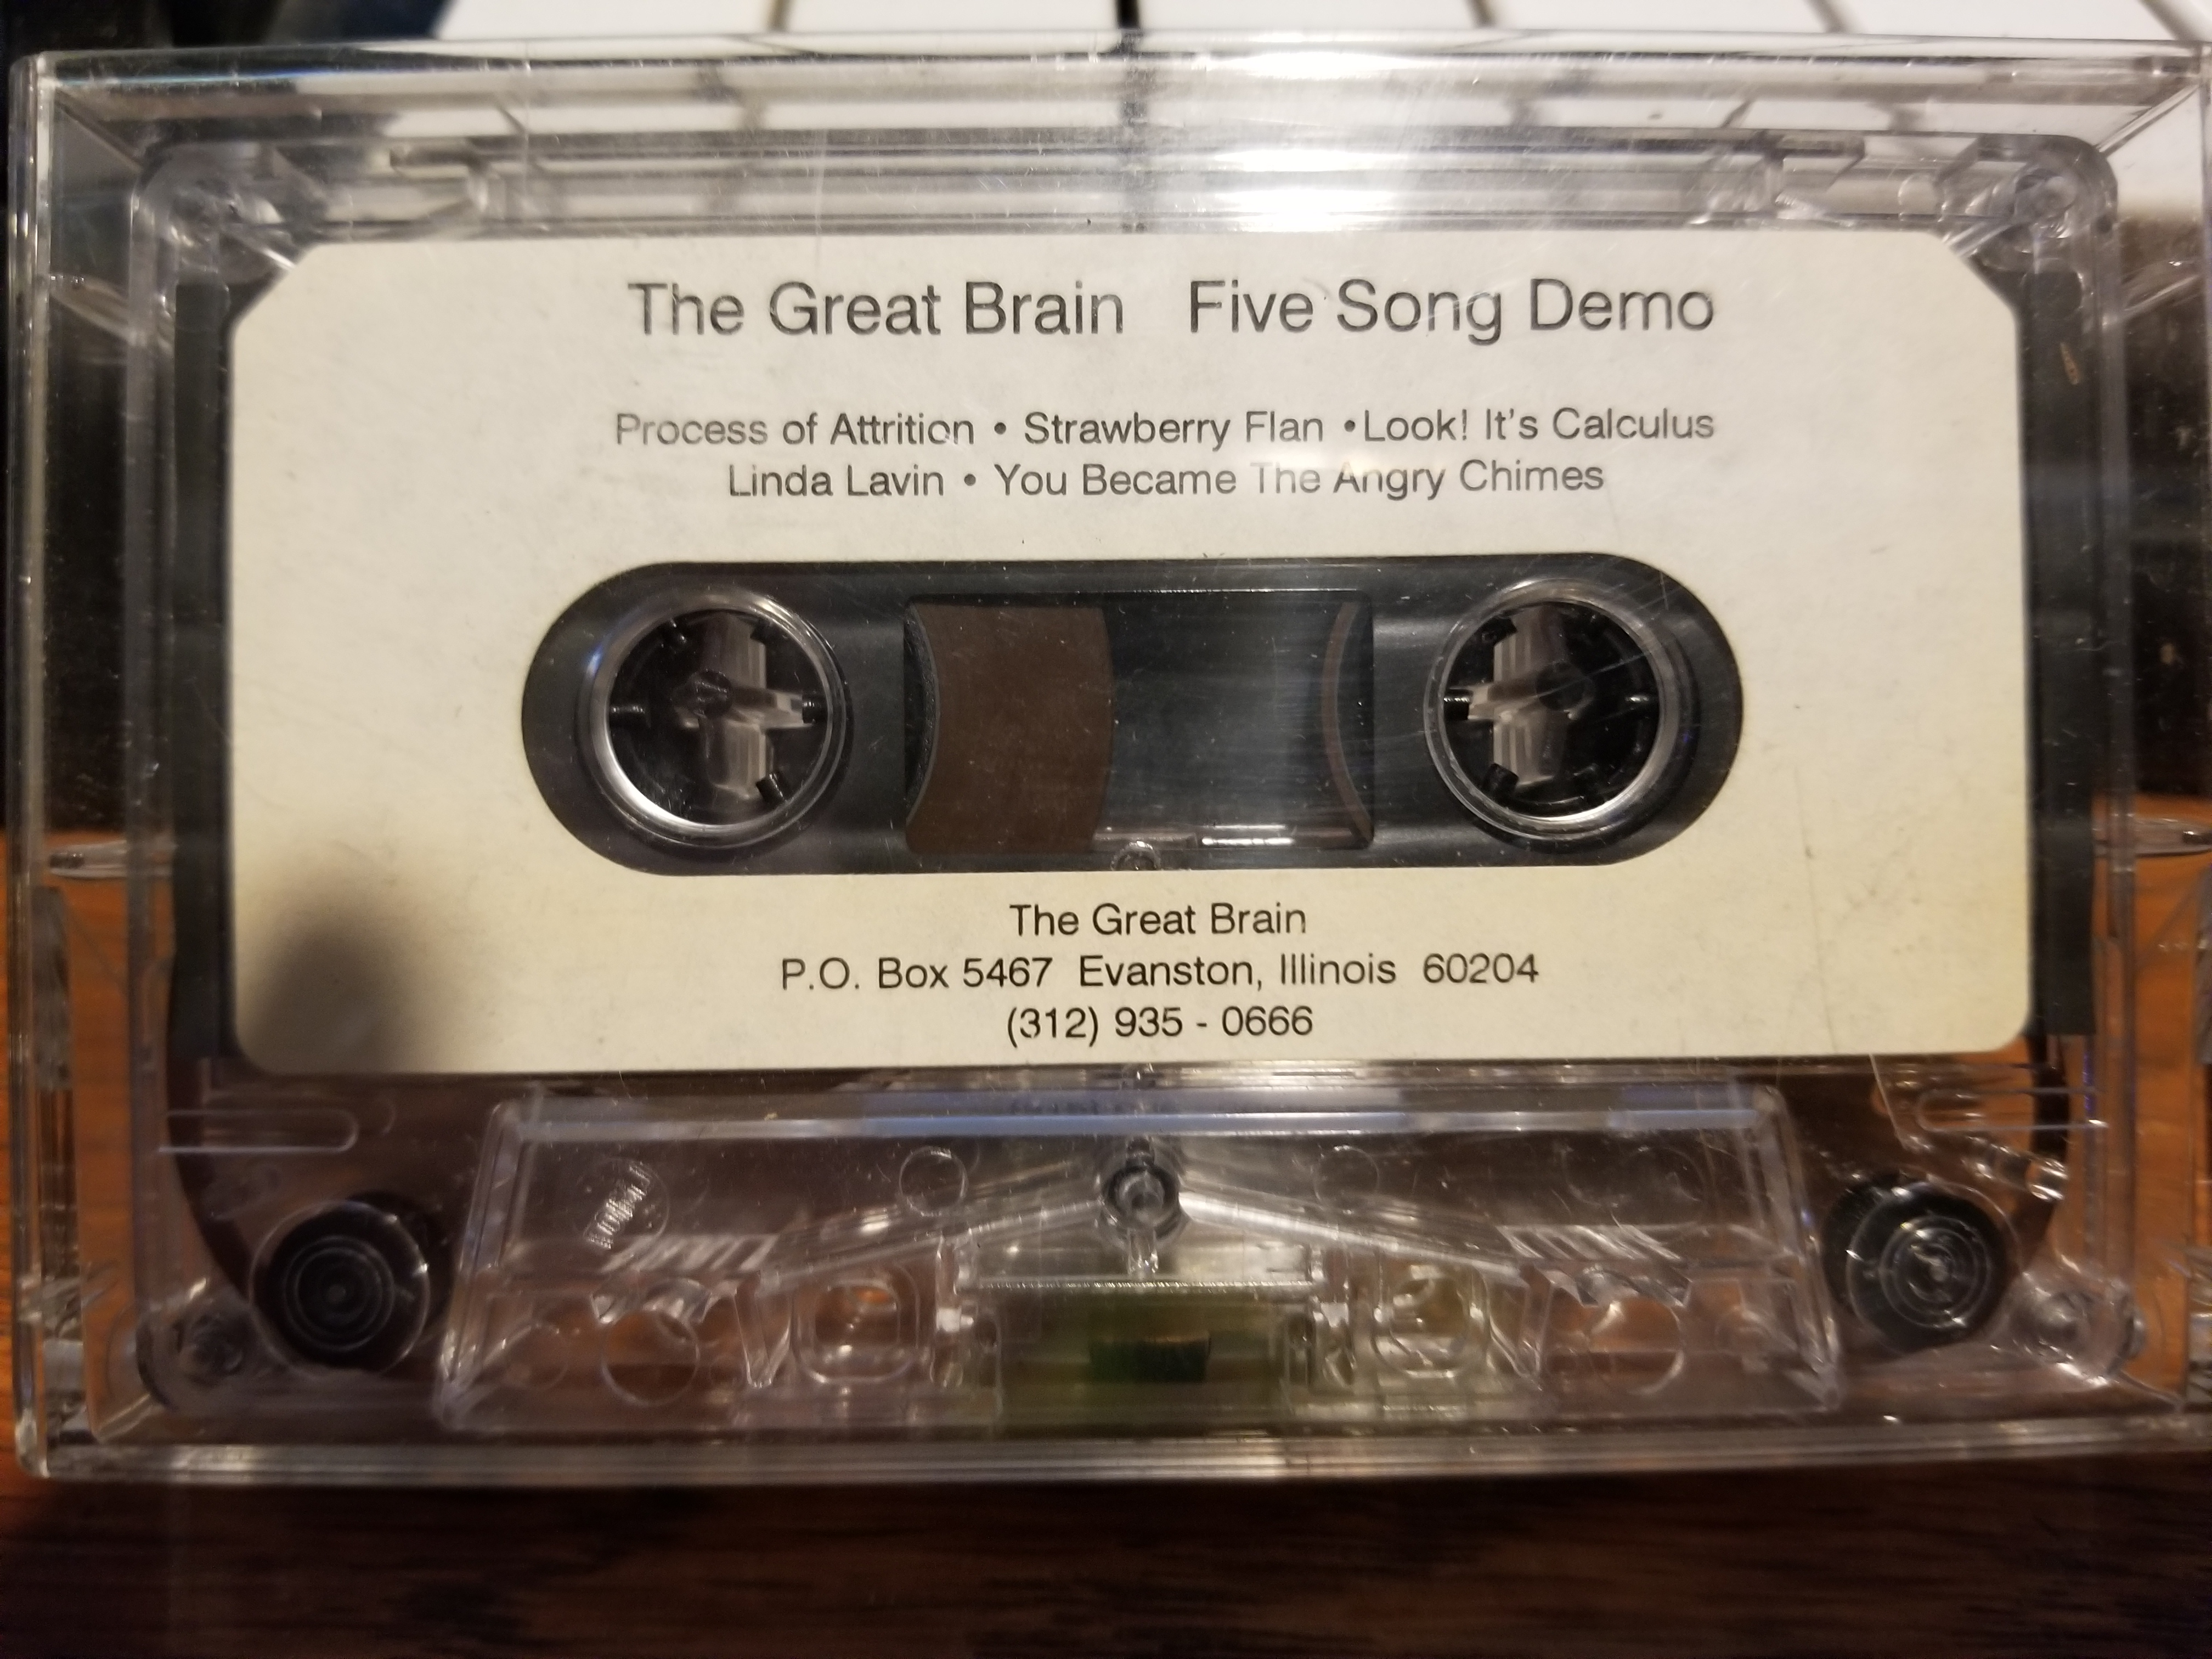 The Great Brain: Five Song Demo, ca 1997